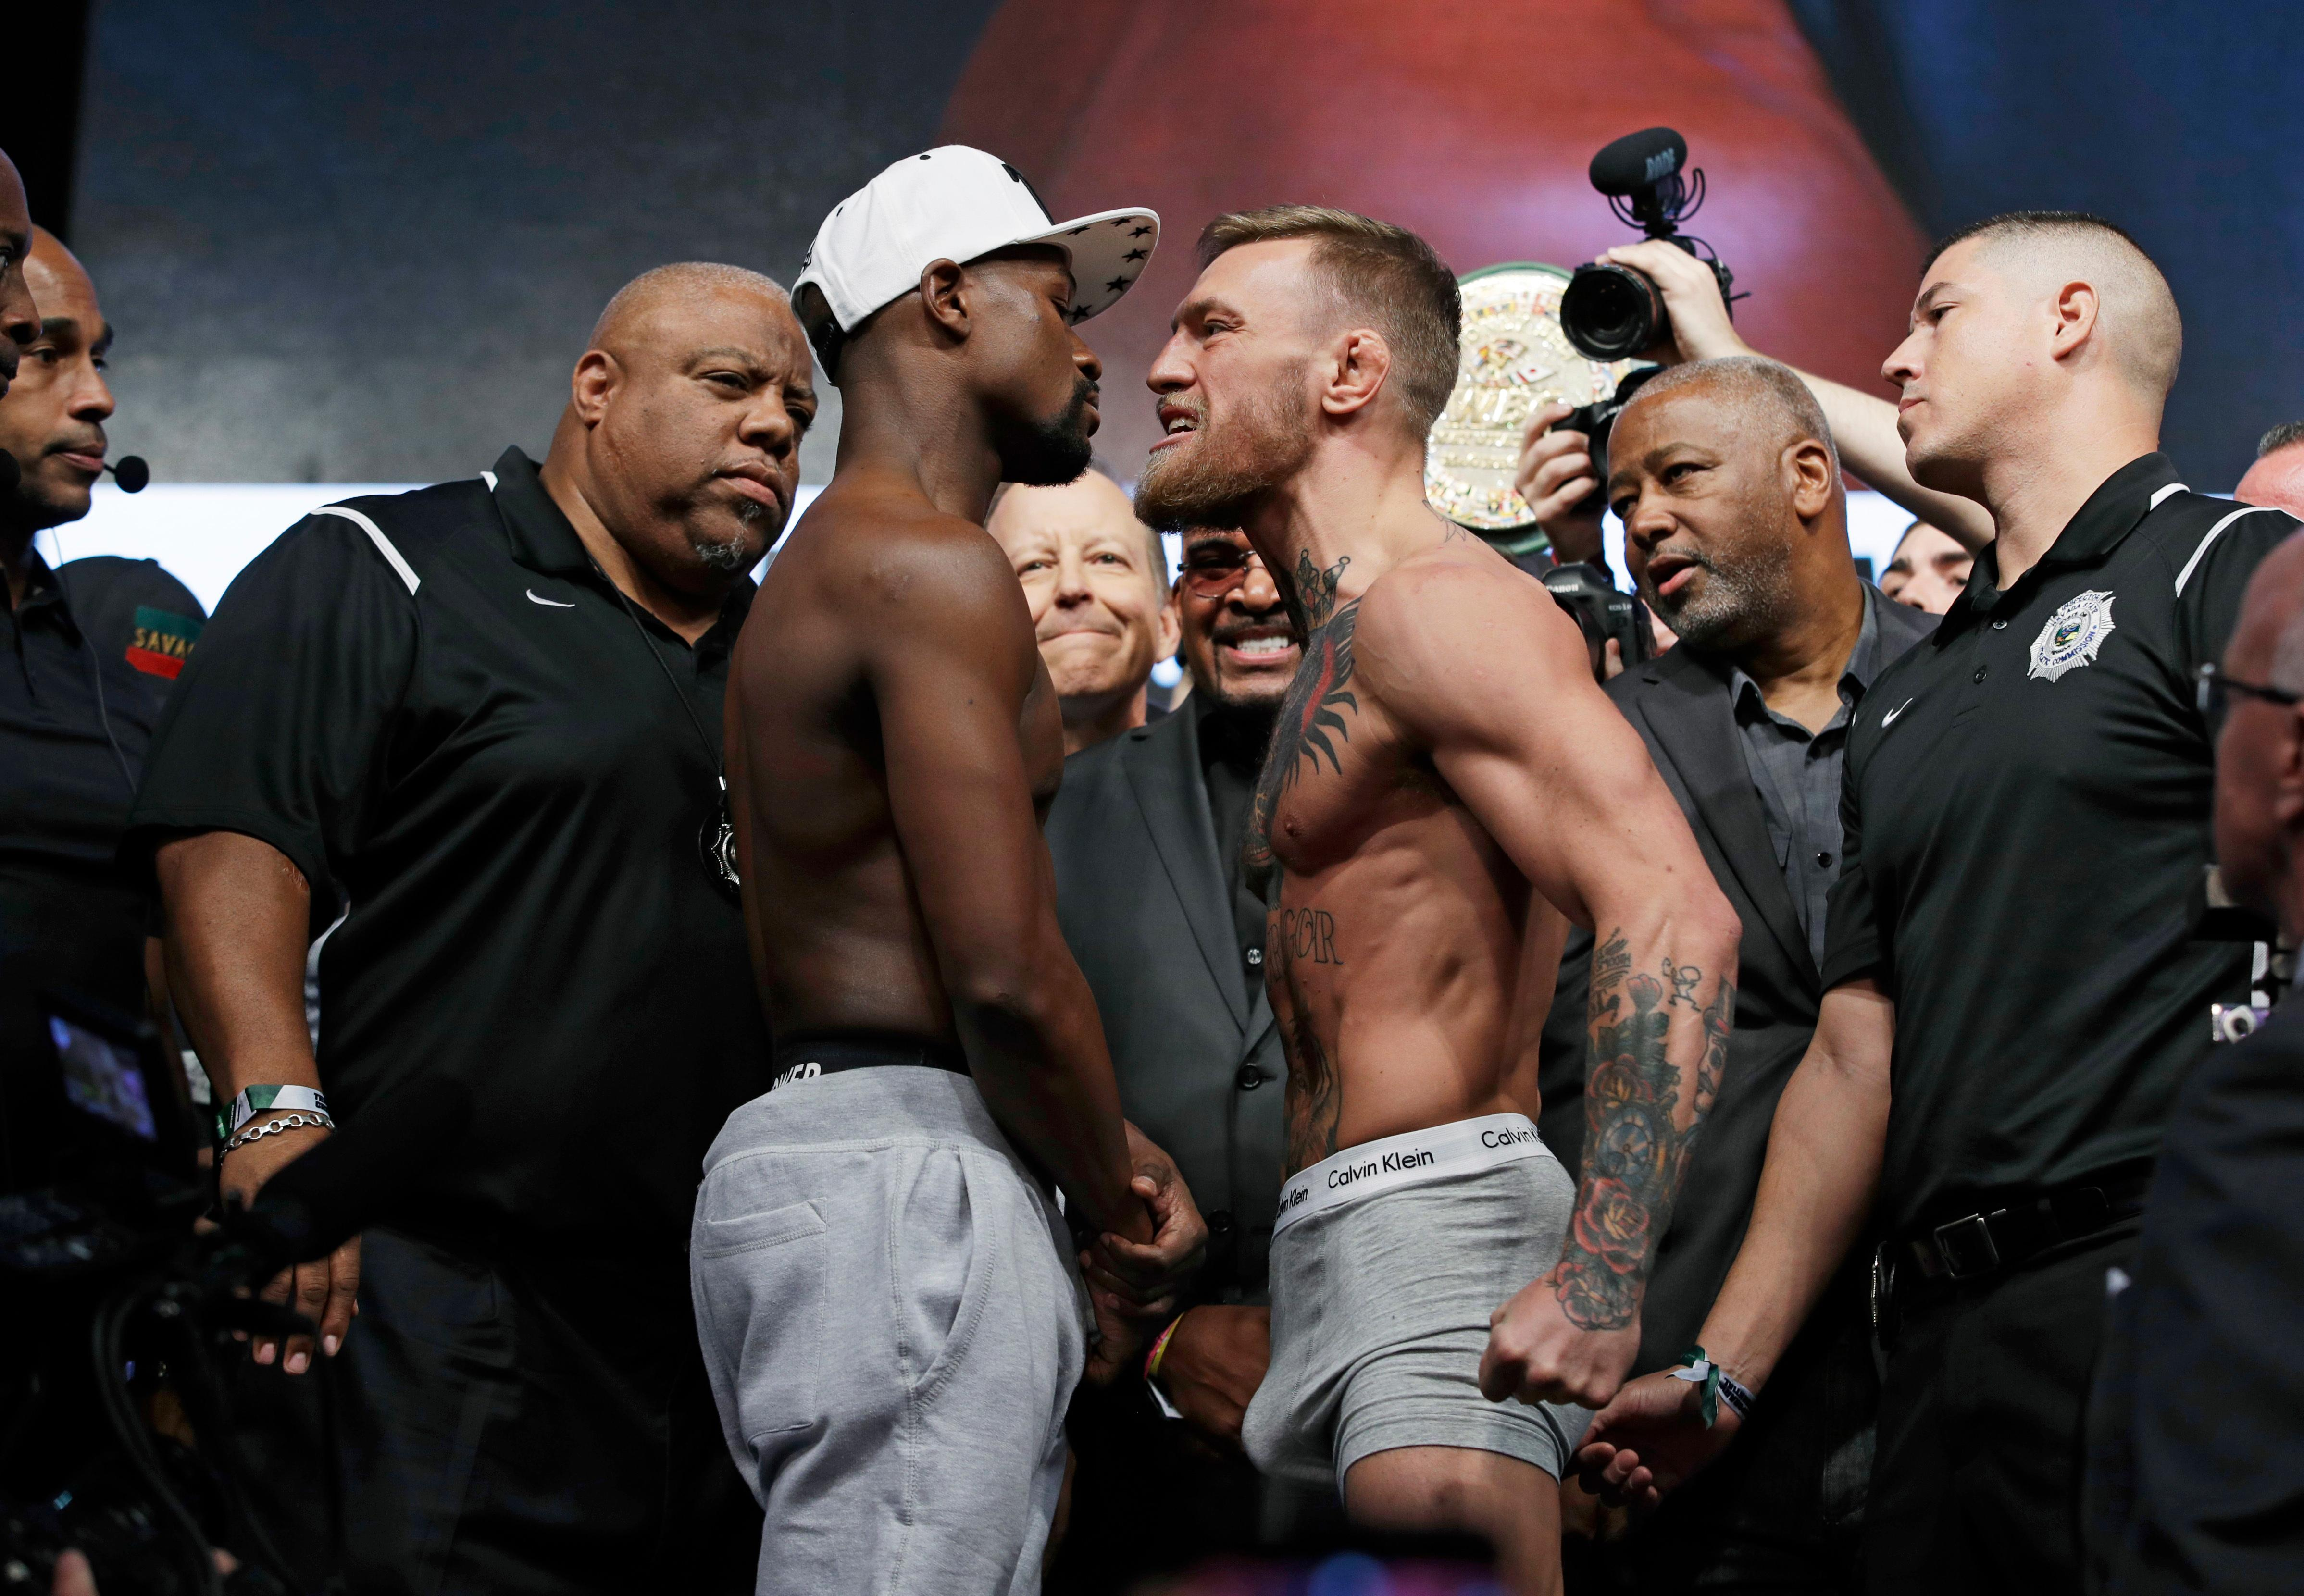 Floyd Mayweather Jr., left, and Conor McGregor face off during weigh-ins Friday, Aug. 25, 2017, in Las Vegas for their Saturday boxing bout. (AP Photo/John Locher)